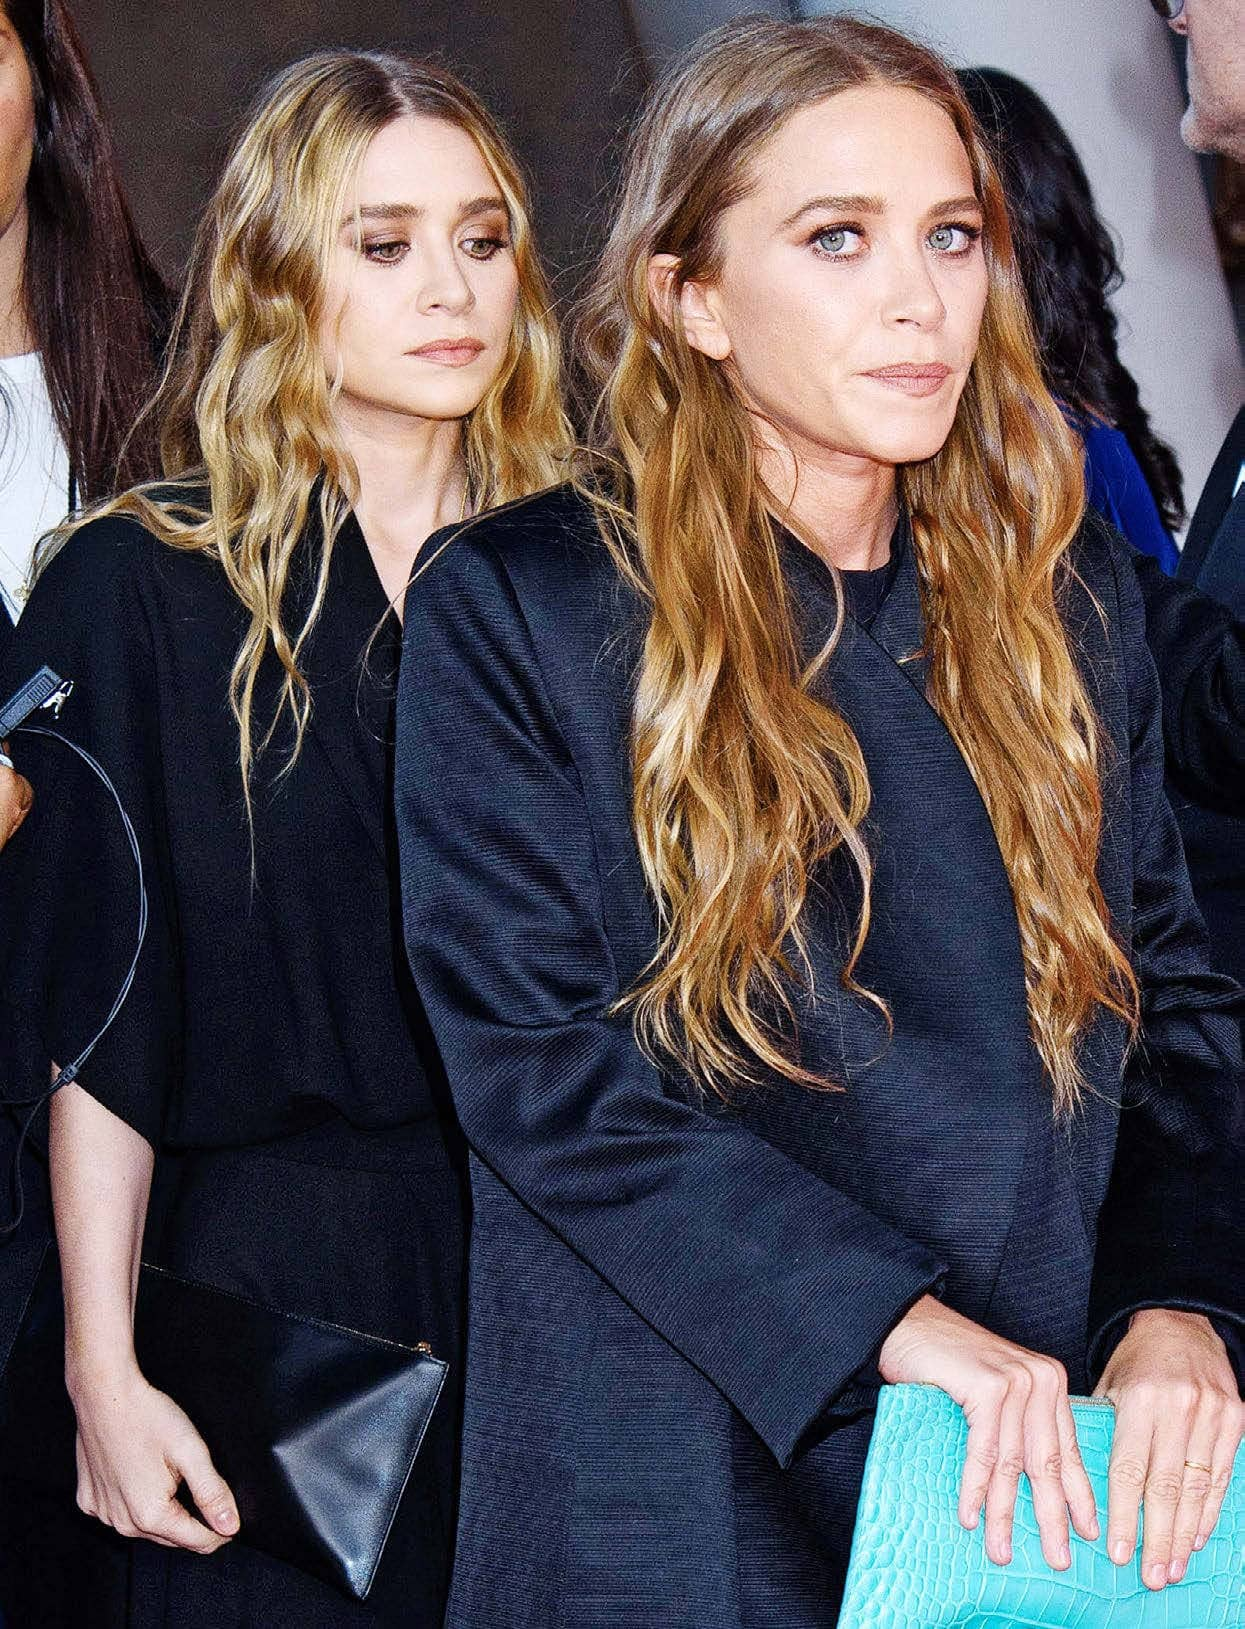 MARY-KATE & ASHLEY SISTERS TORN APART!